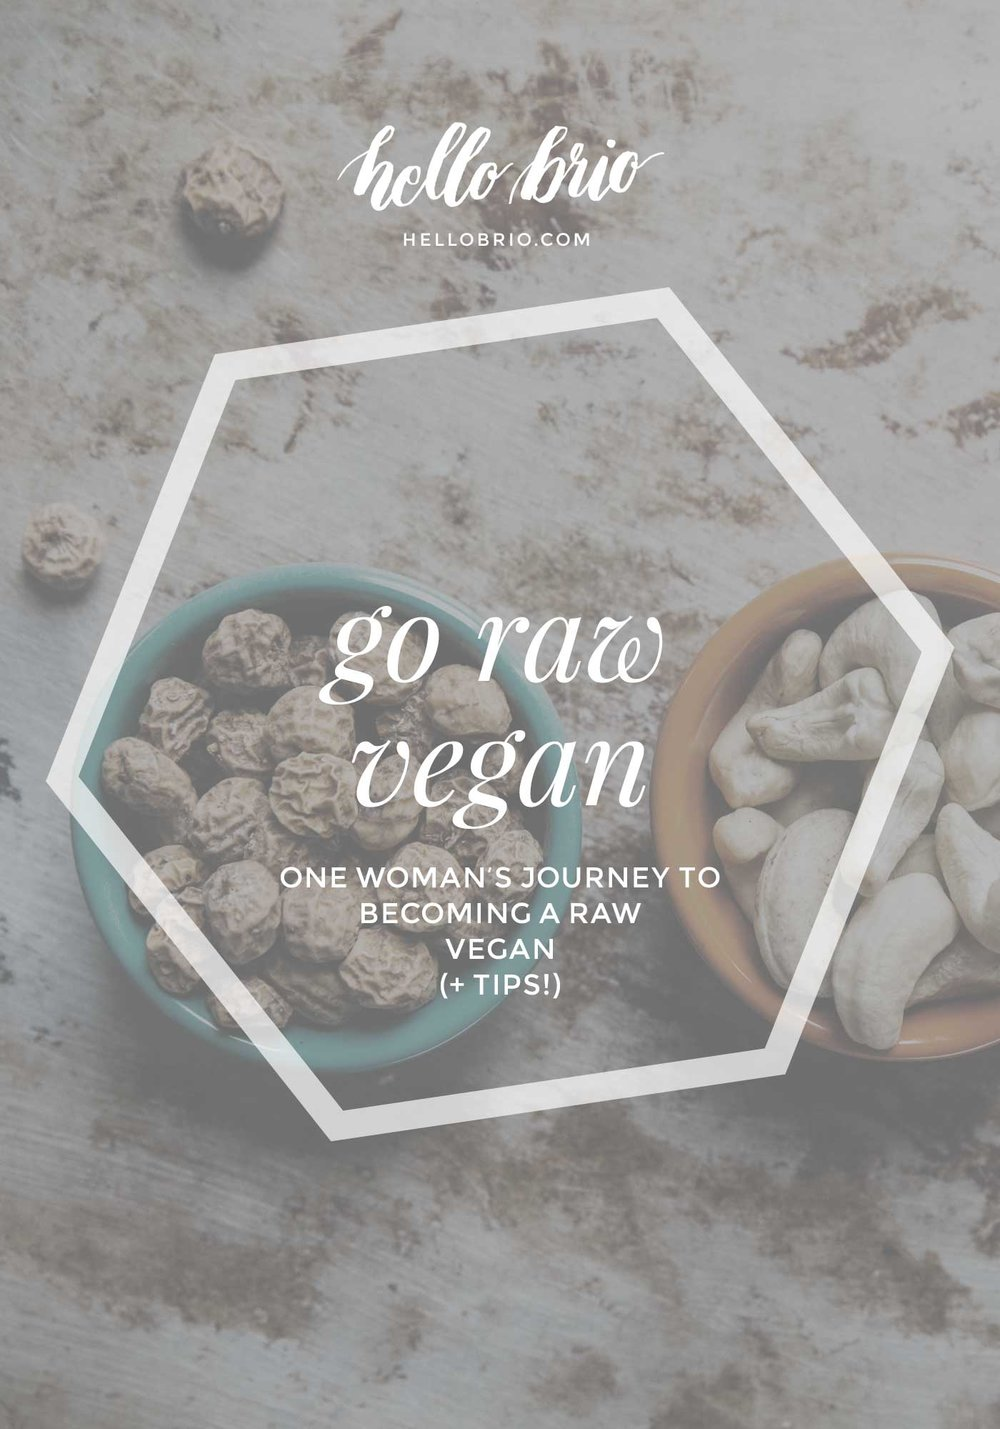 Become a raw vegan: One woman's journey to becoming a raw vegan plus tips | Hello Brio